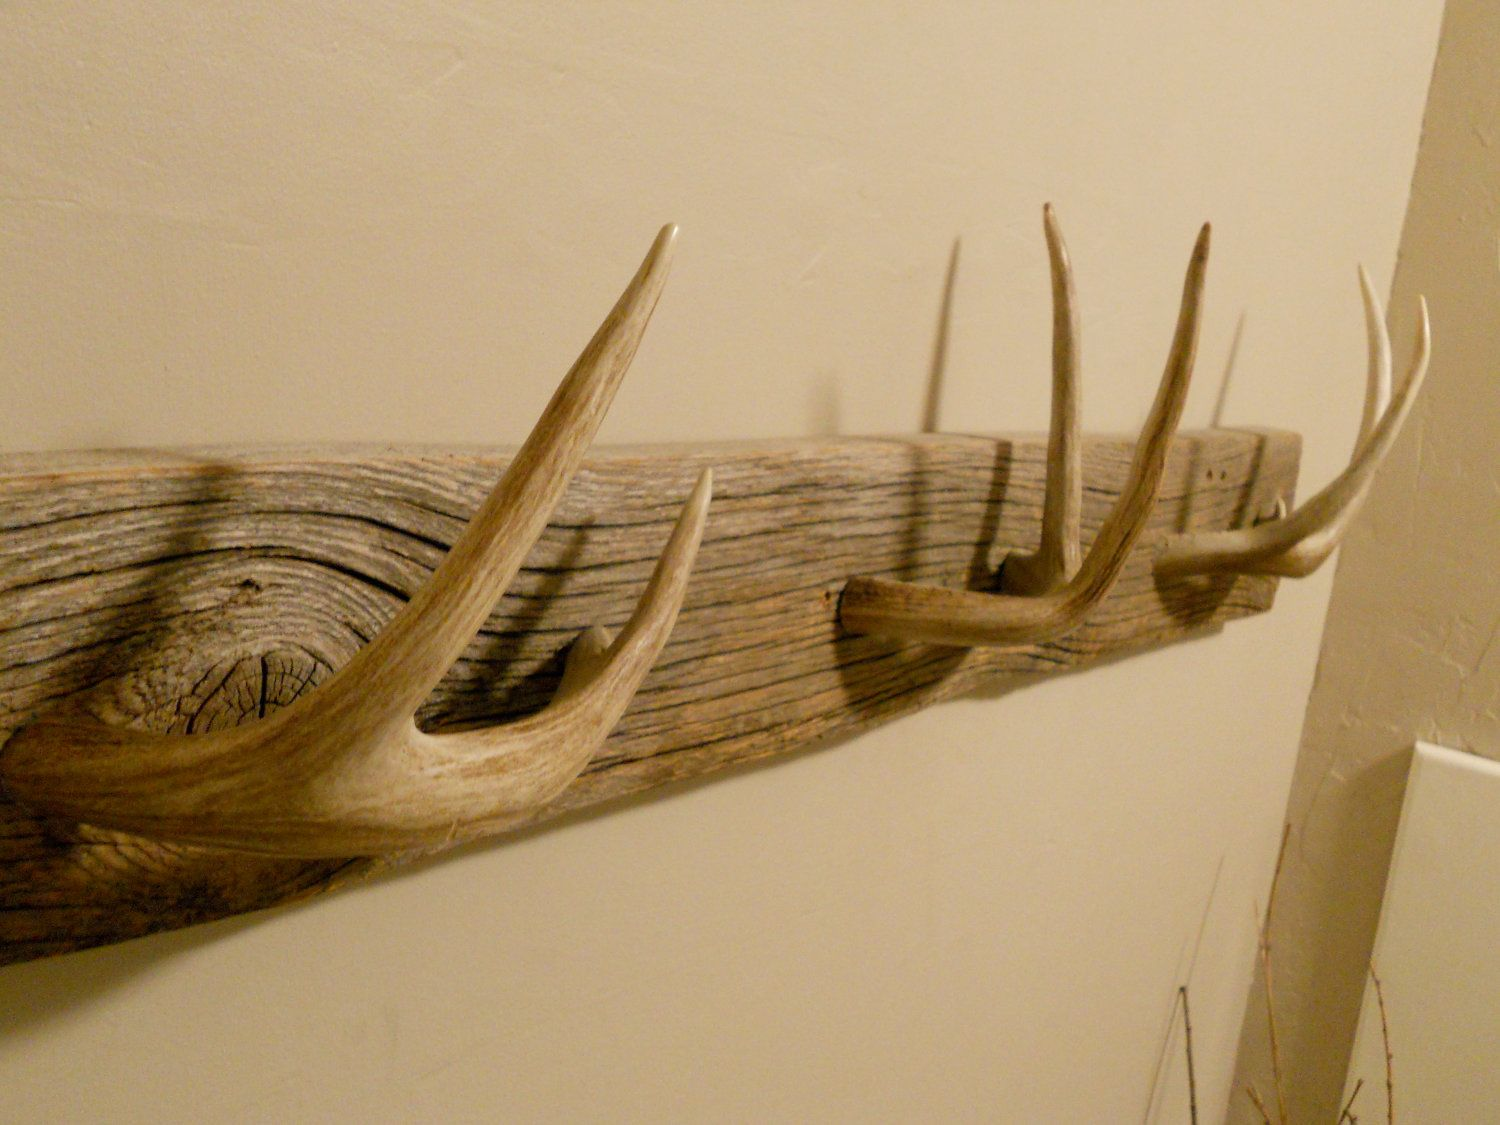 Antler Towel Rack Single Point Horns Instead With Dull Tips